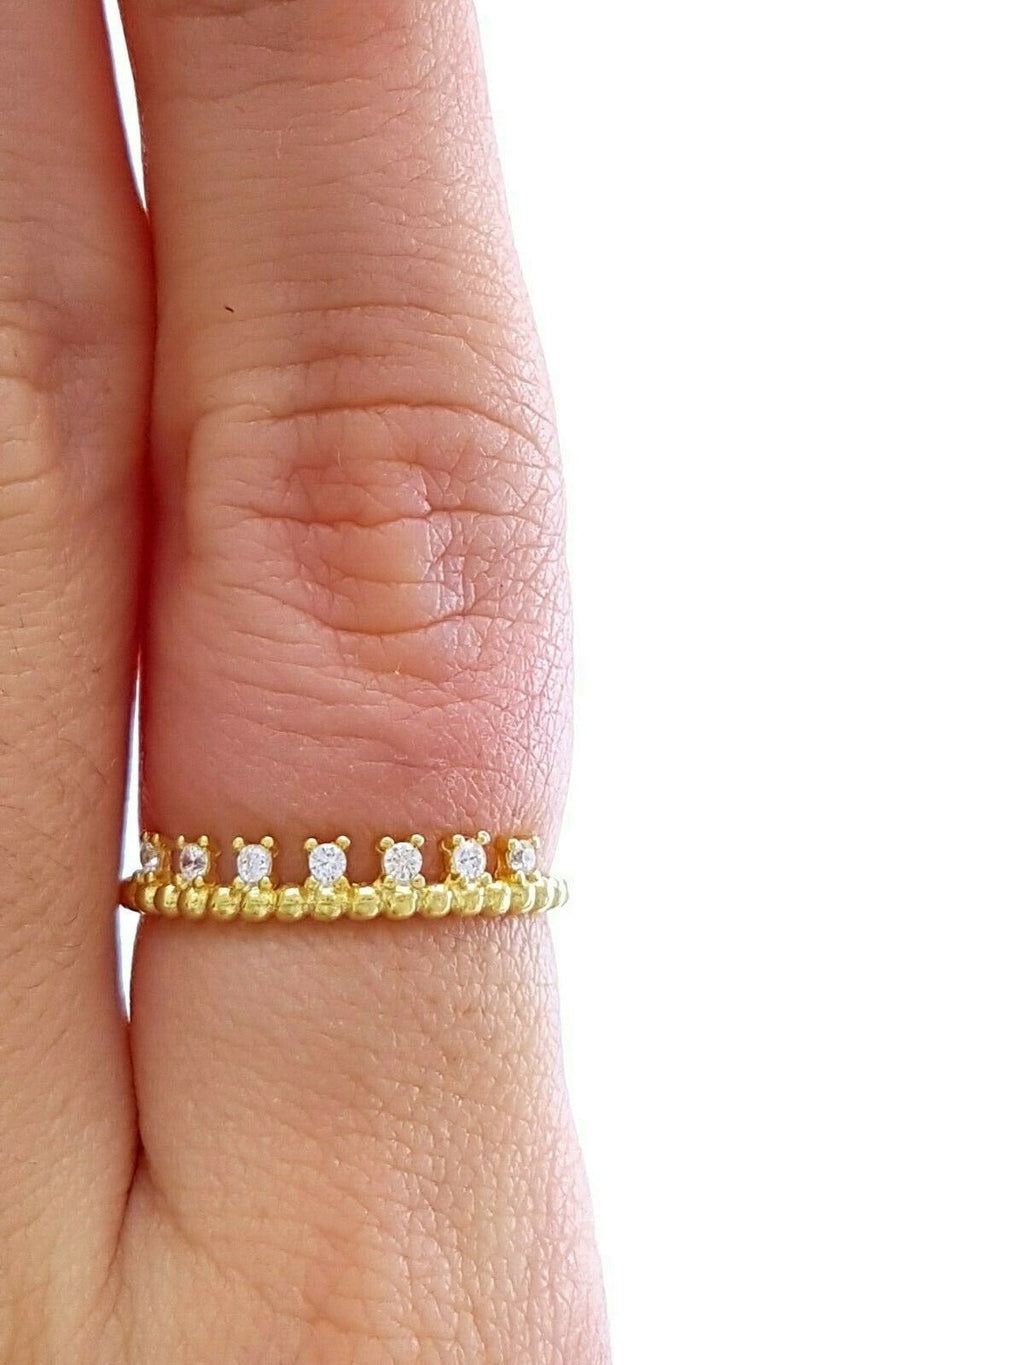 18k Gold Turkish Wholesale Handmade 925 Sterling Silver Jewelry Ball Band Mini Minimalist Thin Ring Trend Gift For her - Turkishsilverjewelry